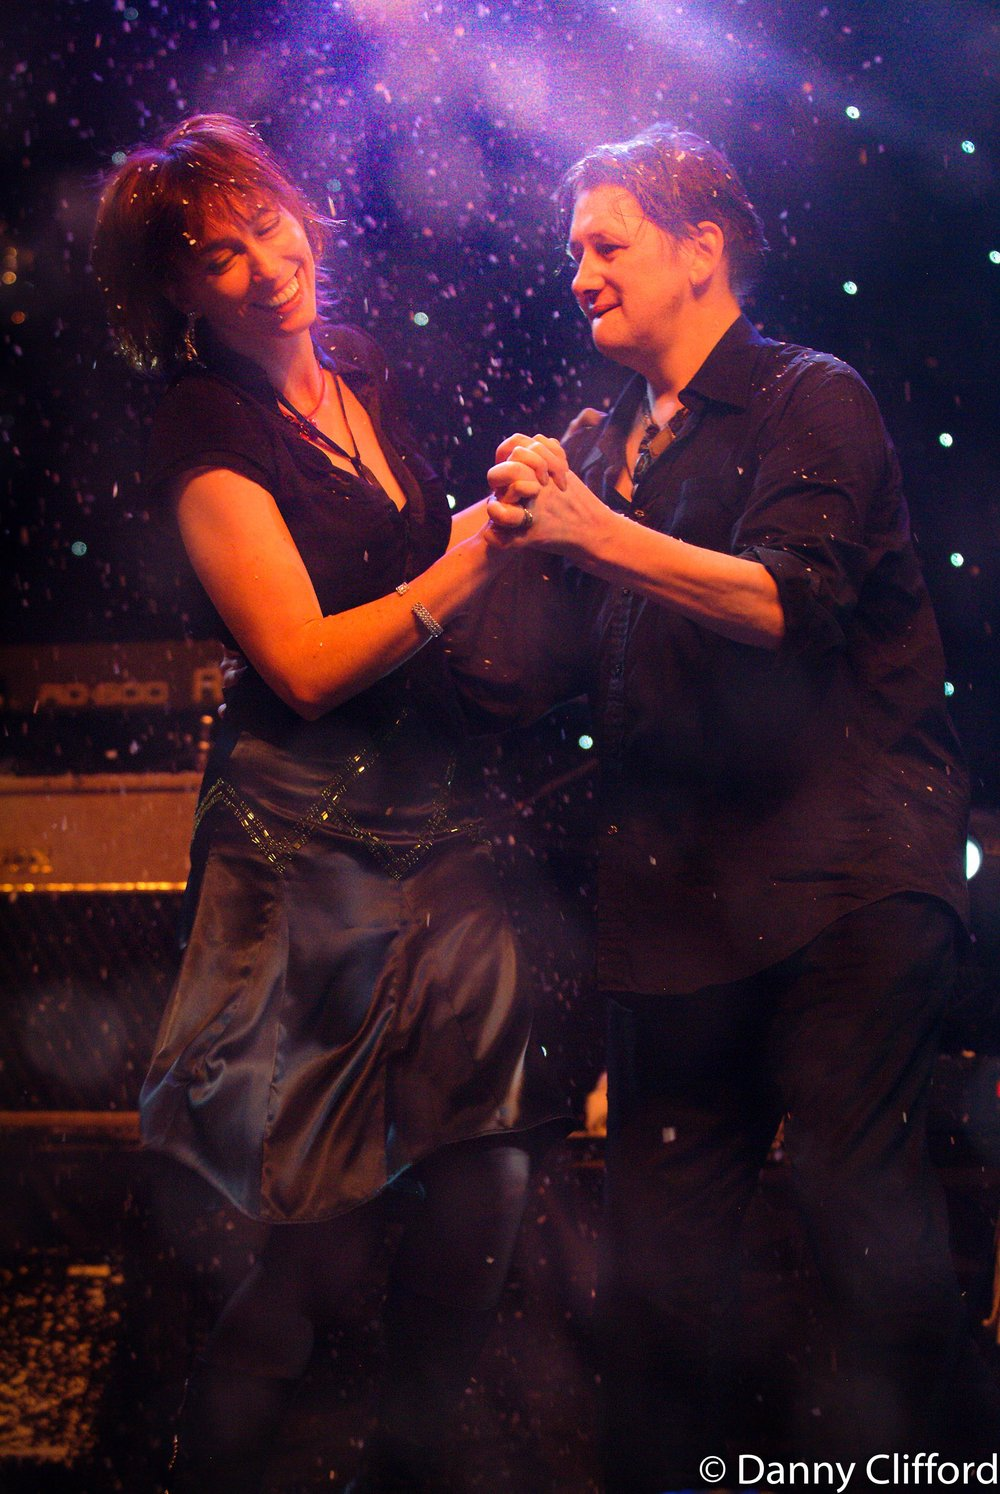 Cait & Shane dancing during a live performance or Fairytale of New York.